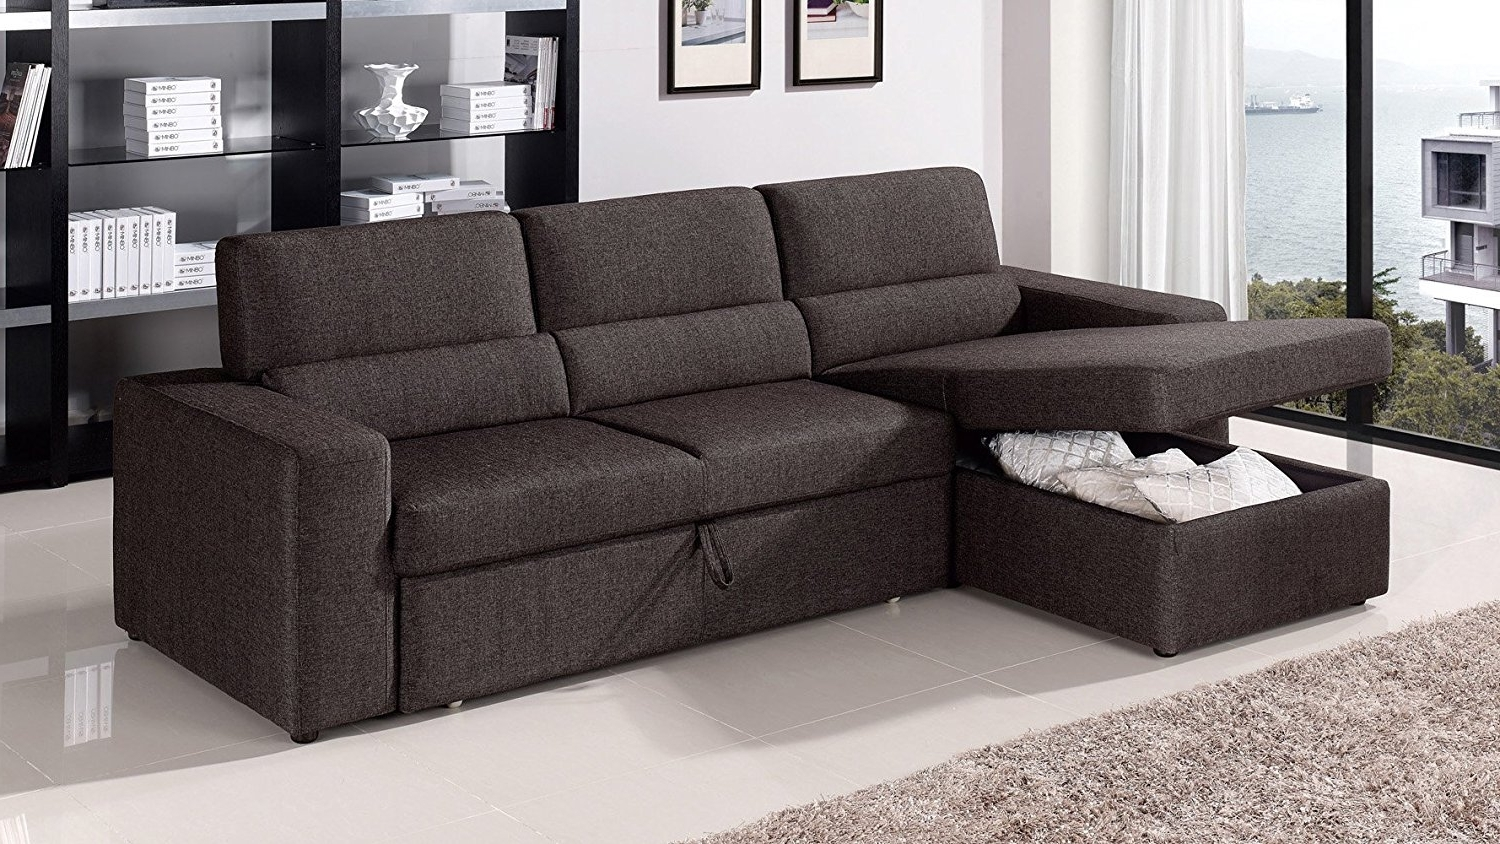 Amazon: Black/brown Clubber Sleeper Sectional Sofa – Left For Most Up To Date Sleeper Chaise Sofas (View 2 of 15)